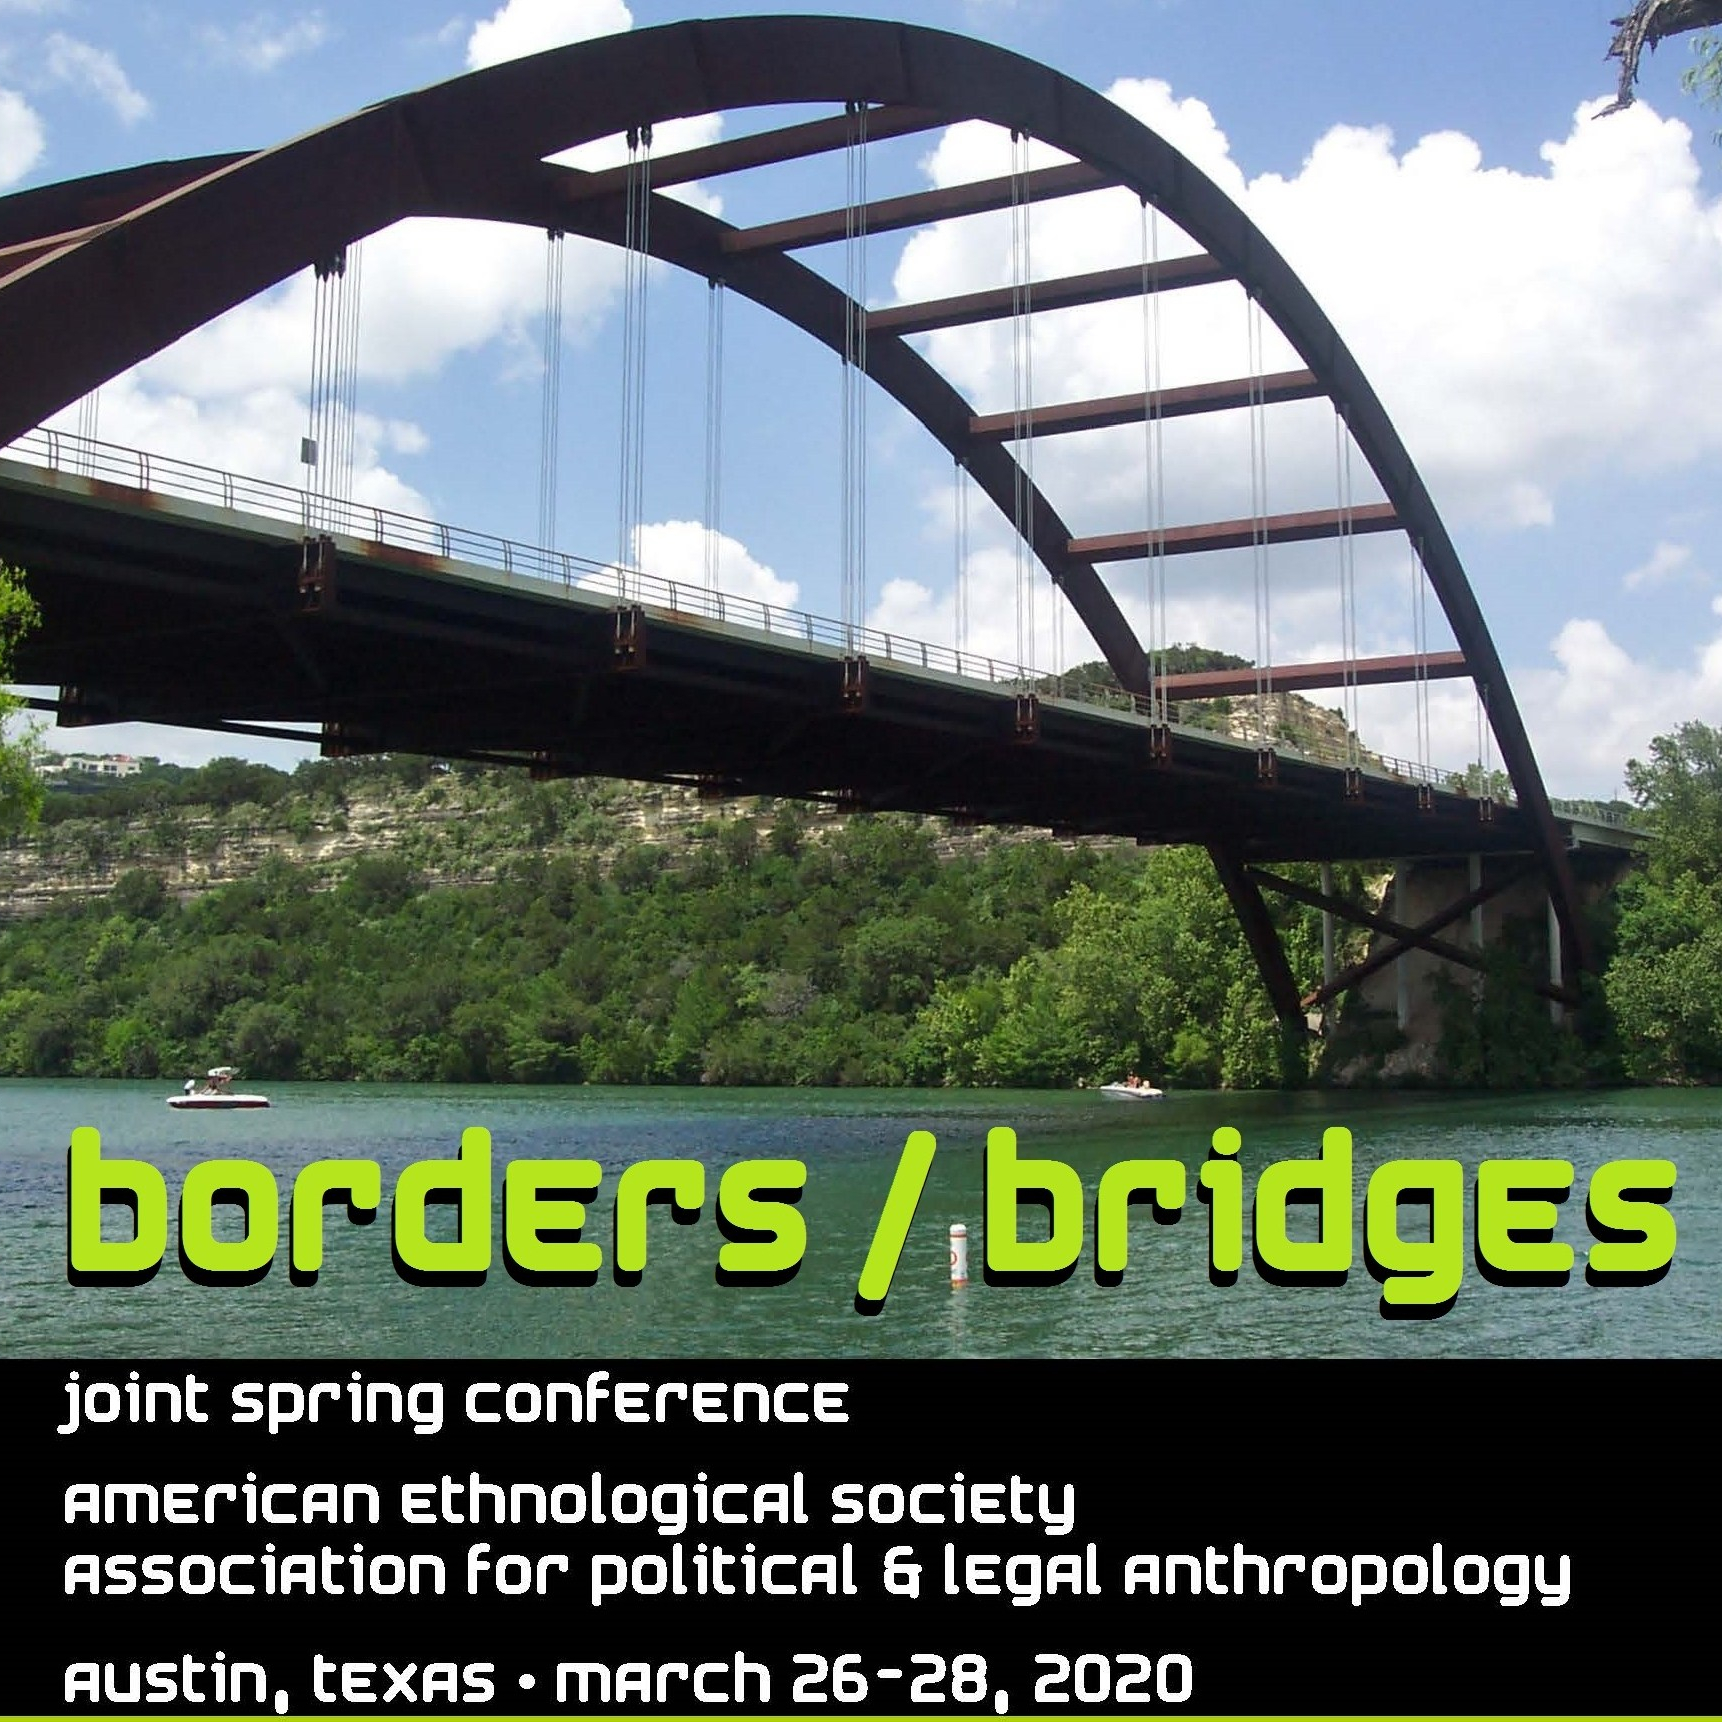 Borders/Bridges Preliminary Program!